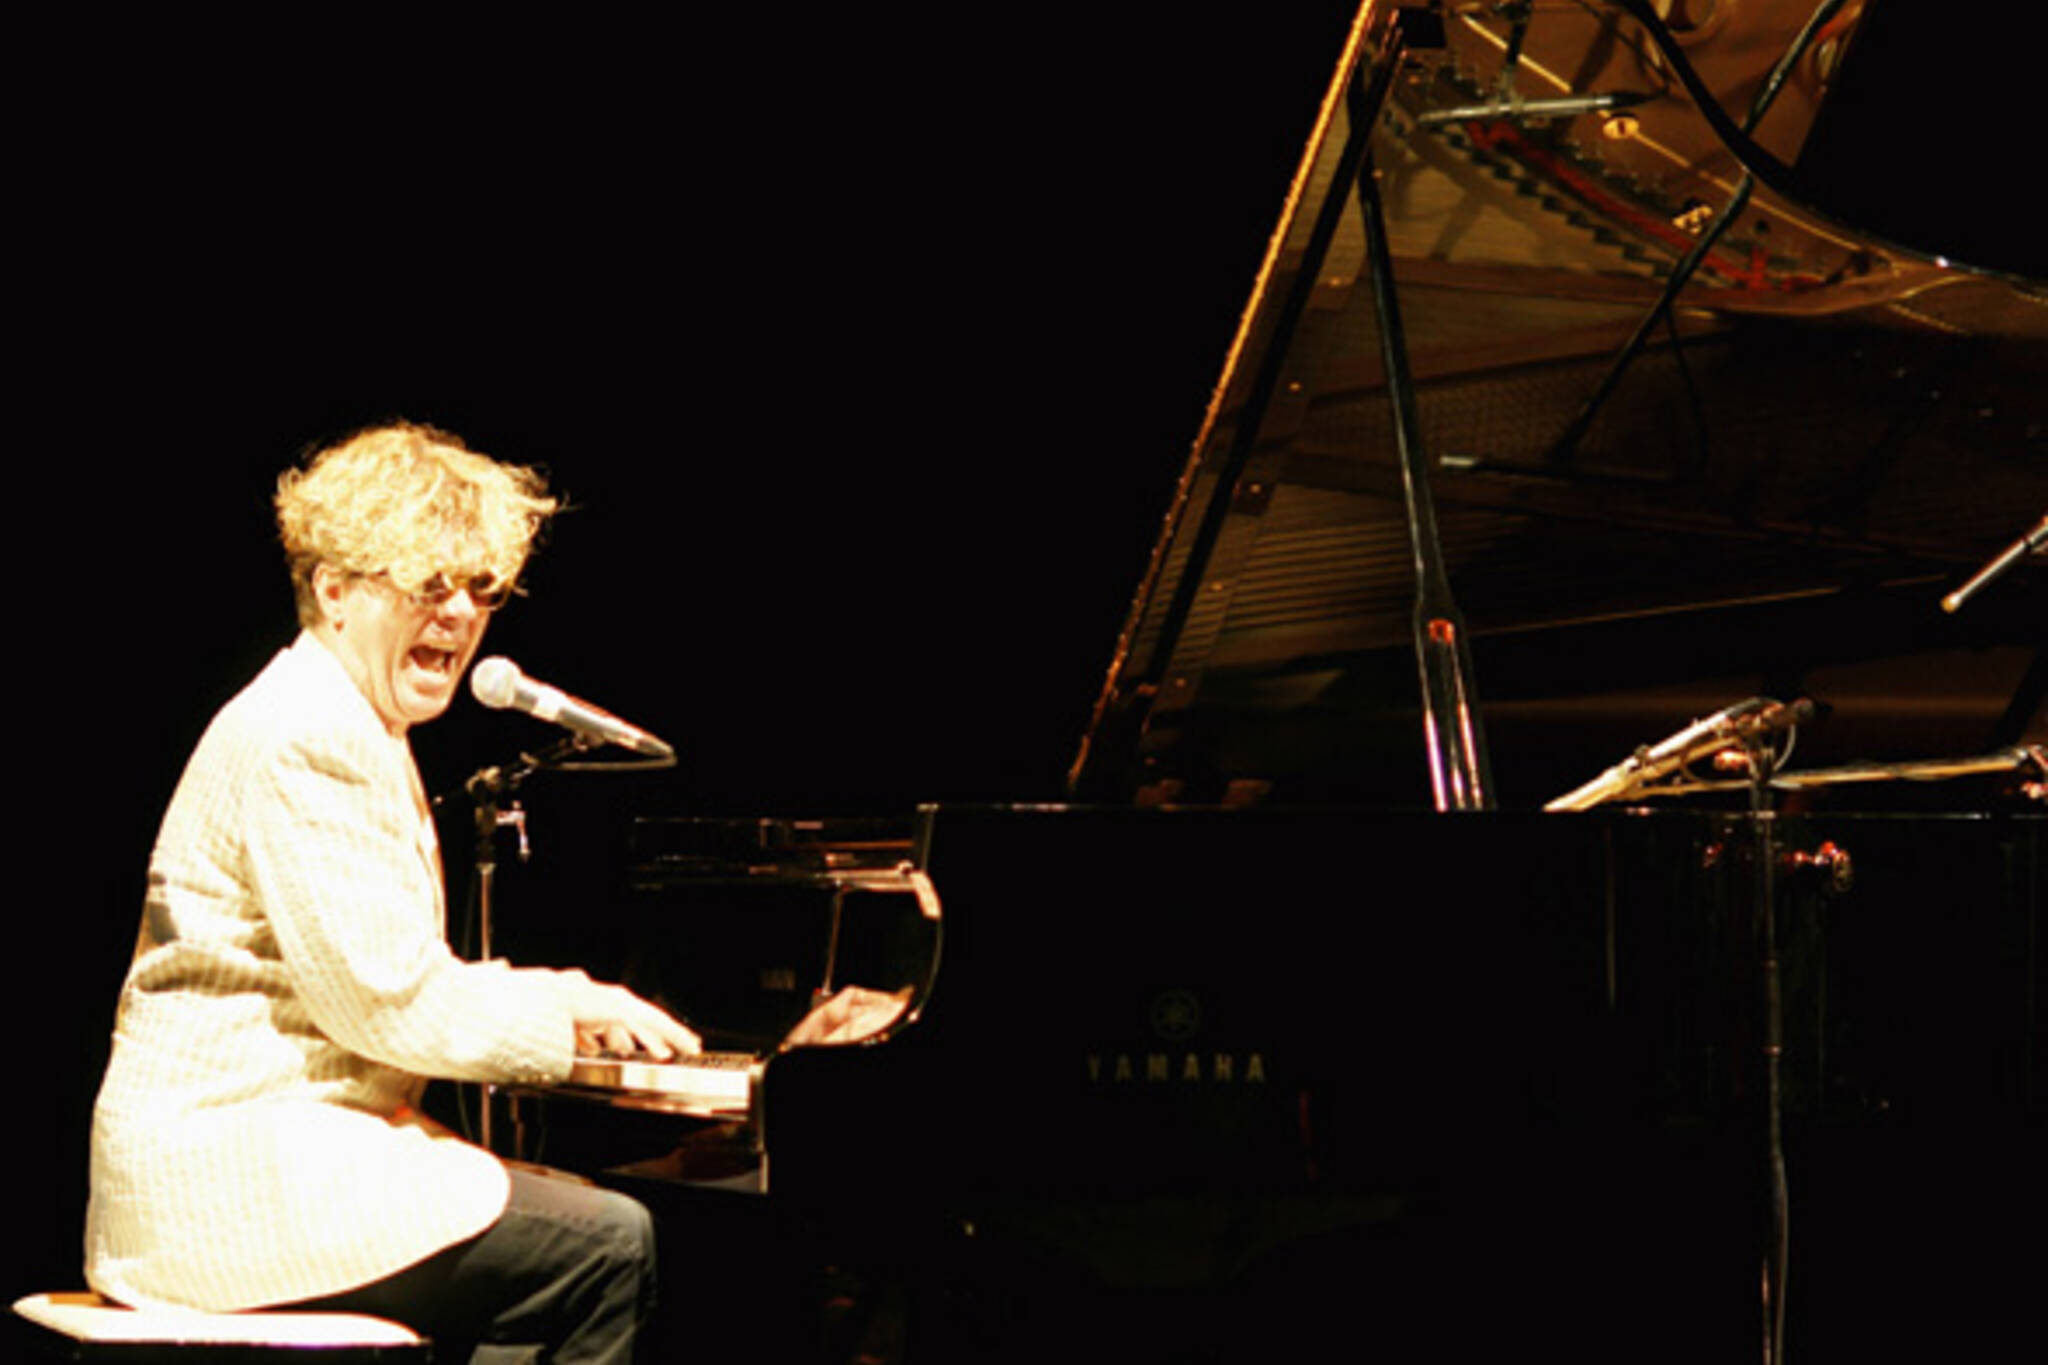 Ted Dykstra as Jerry Lee Lewis in Fire excerpt during Art of Time Ensemble's Words & Music concert